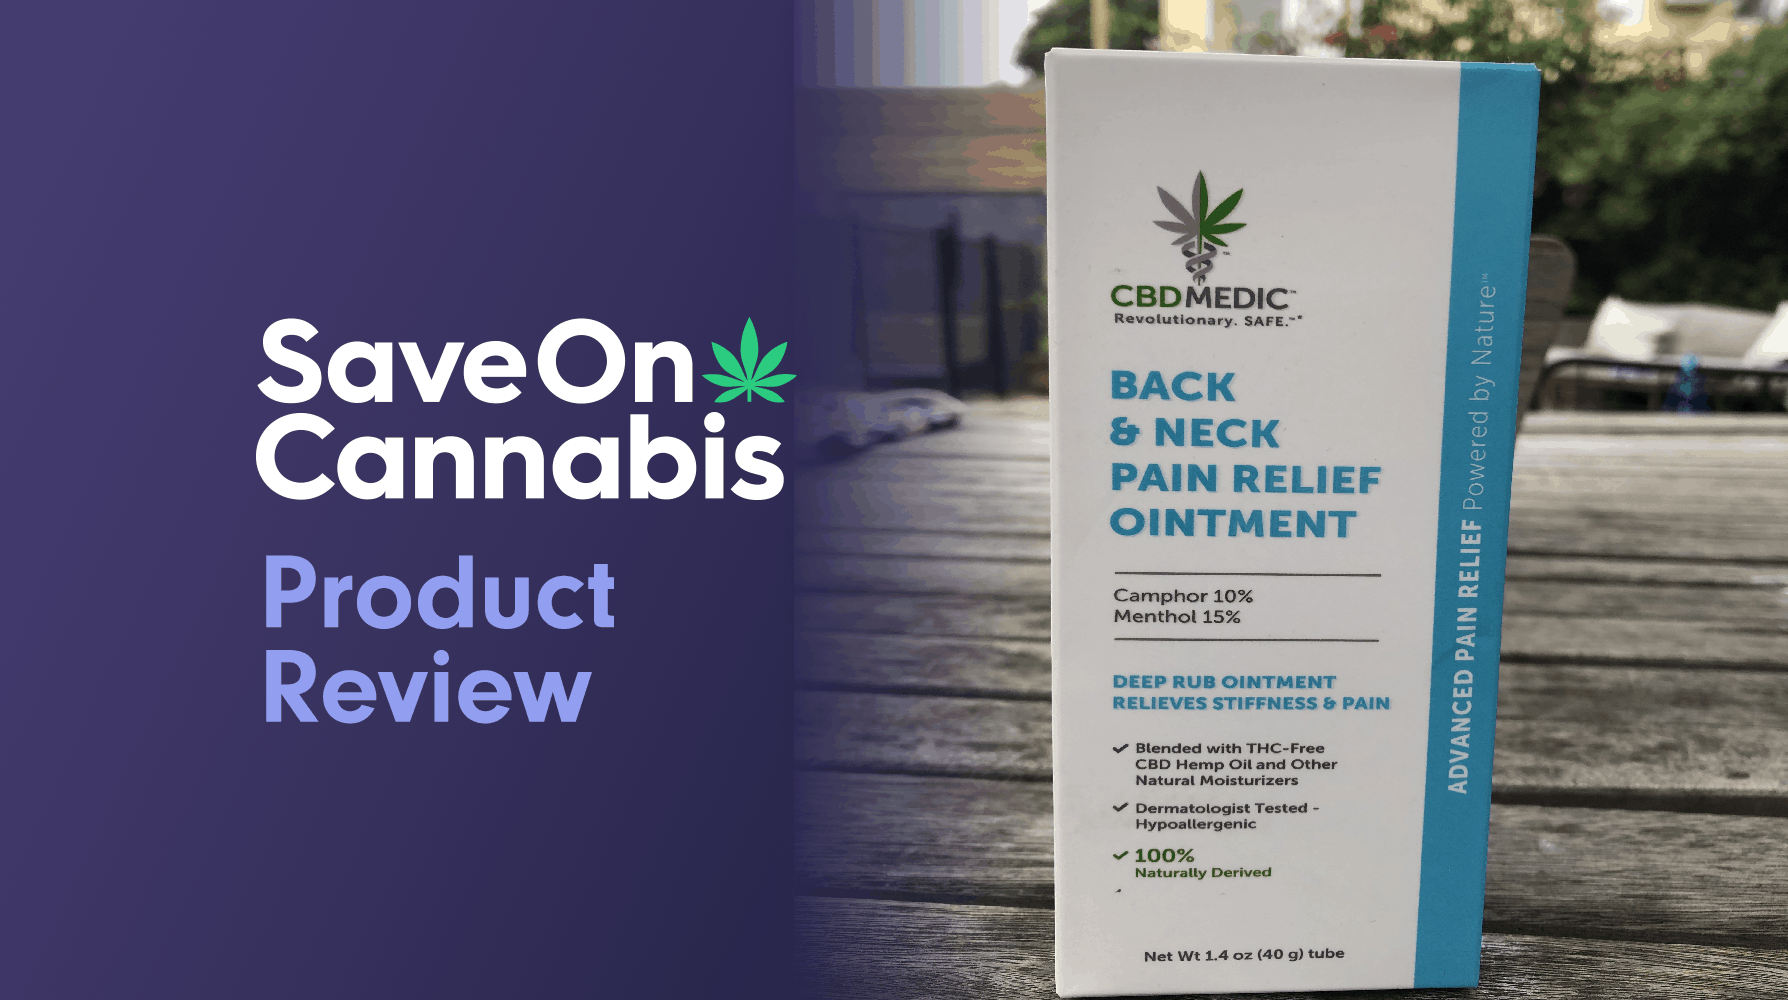 cbdmedic back and pain relief ointment review save on cannabis website